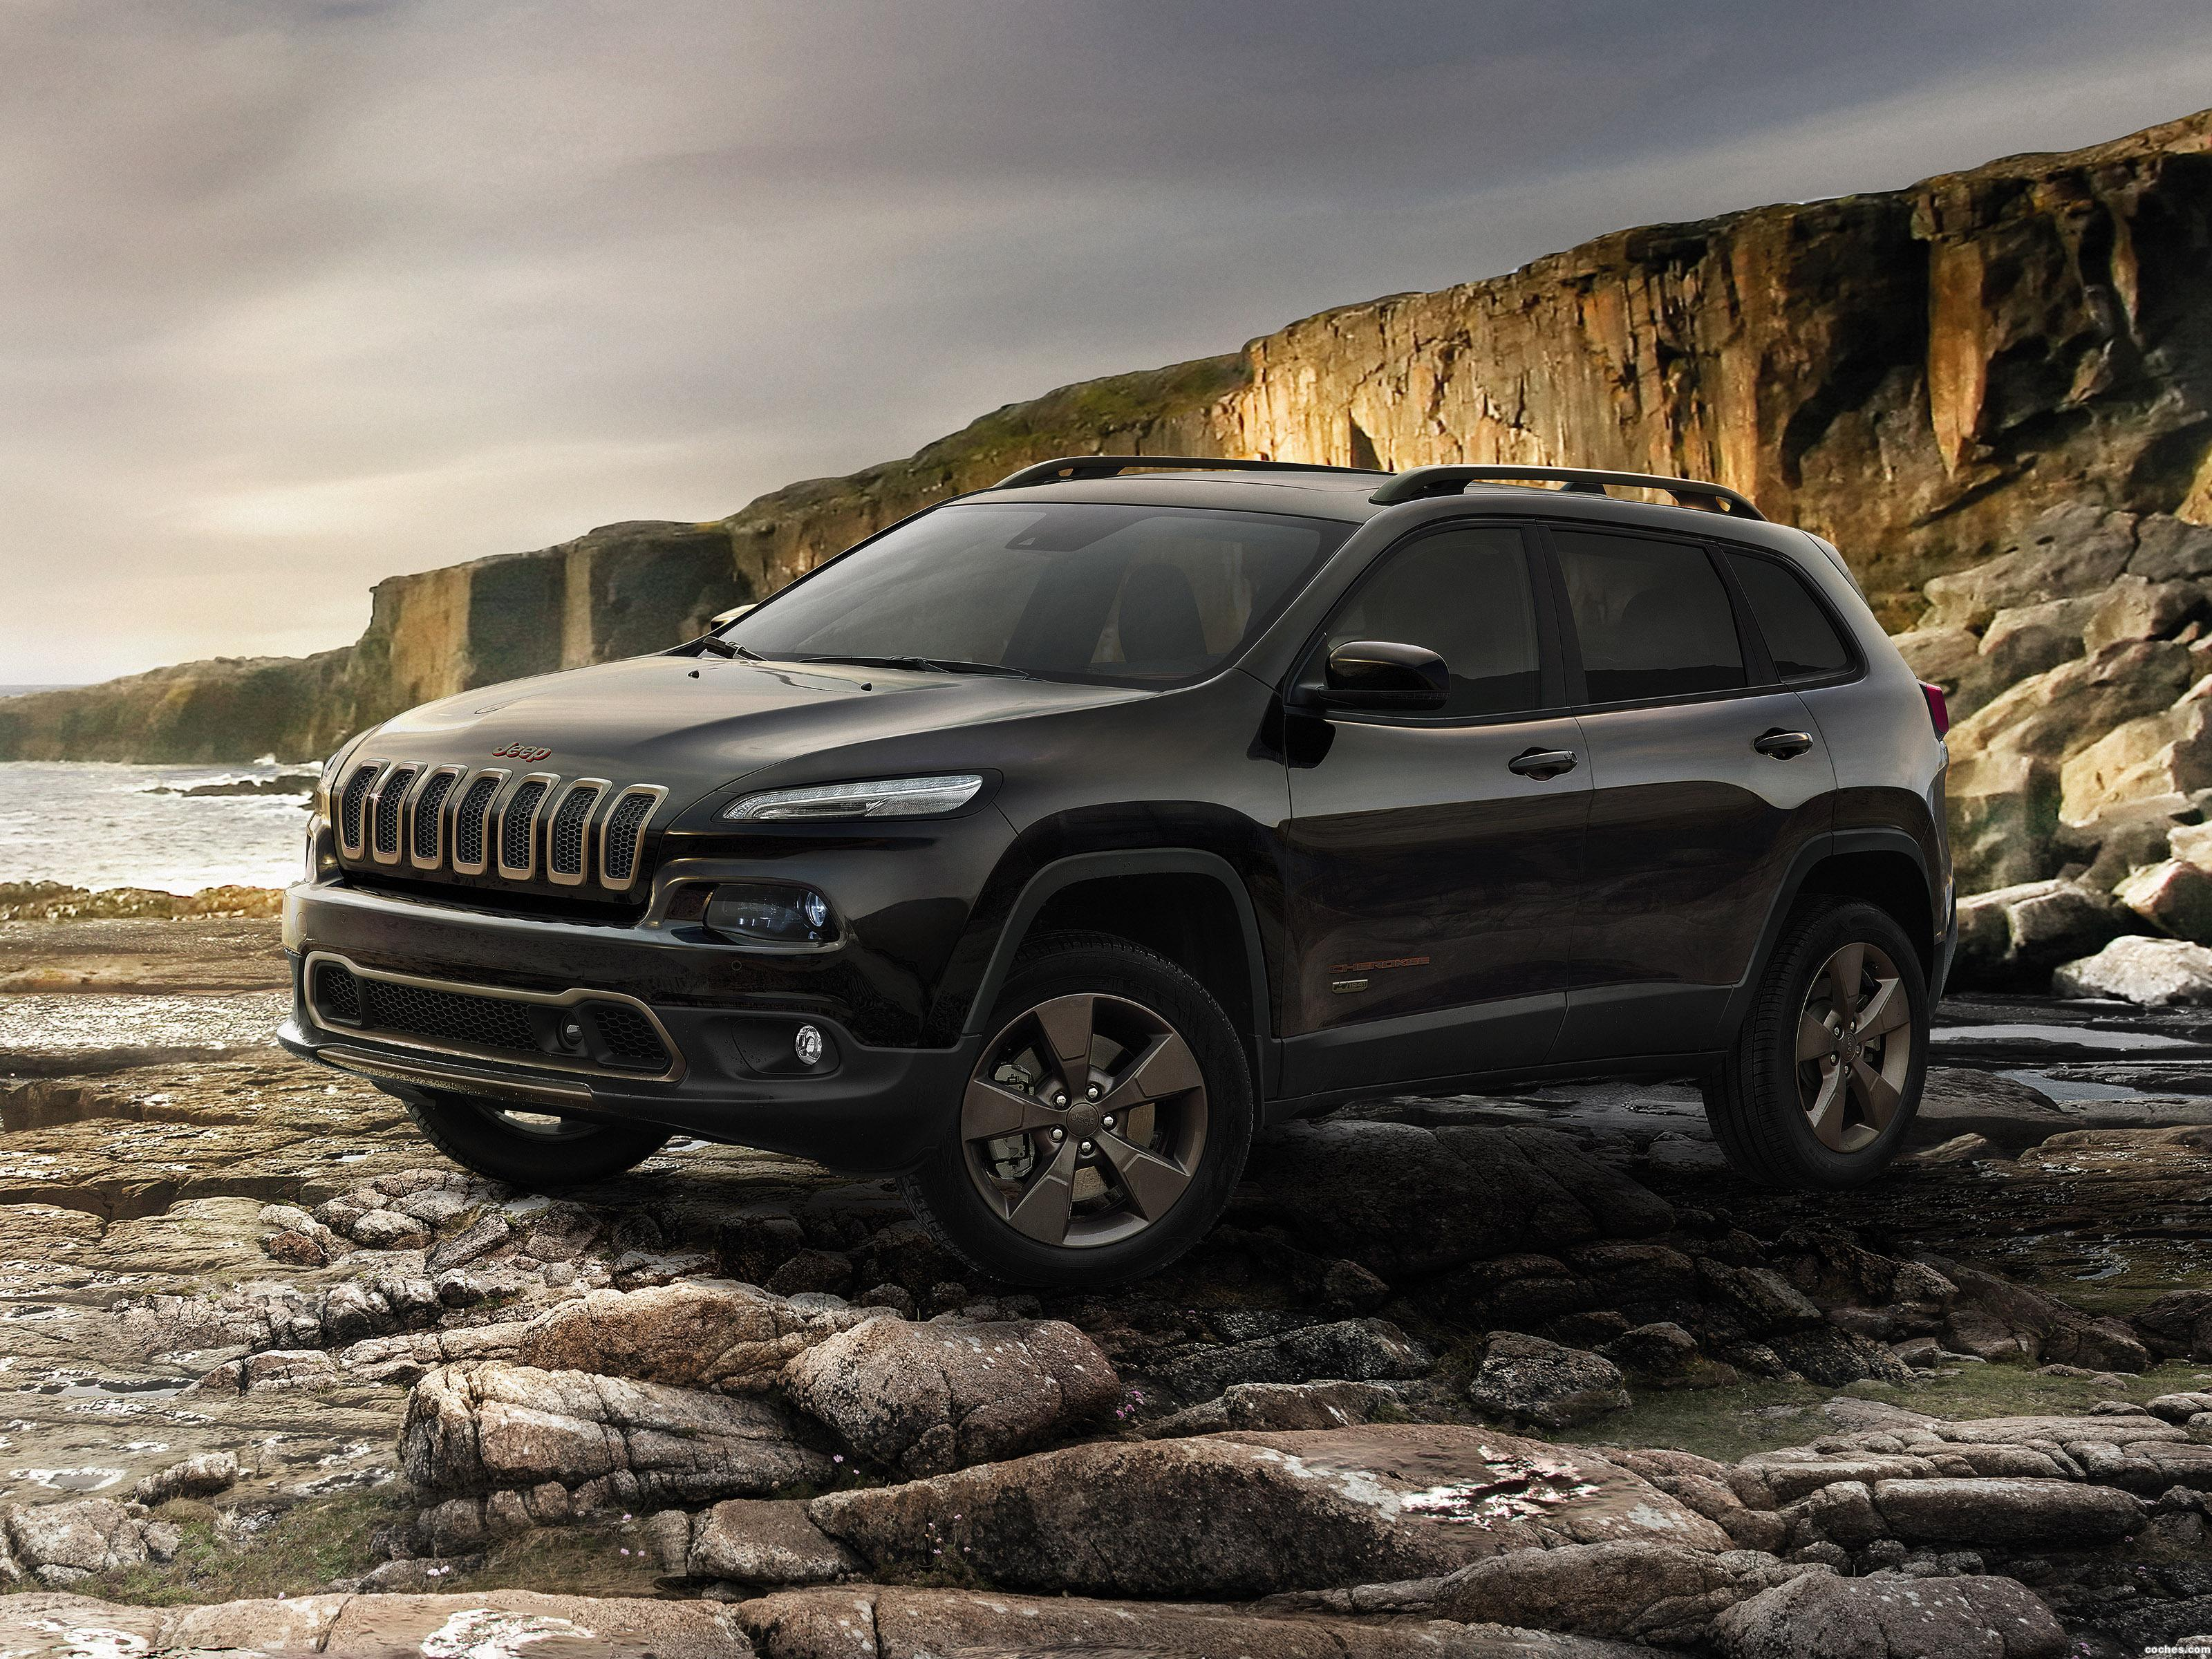 jeep_cherokee-75th-anniversary-europe-2016_r2.jpg